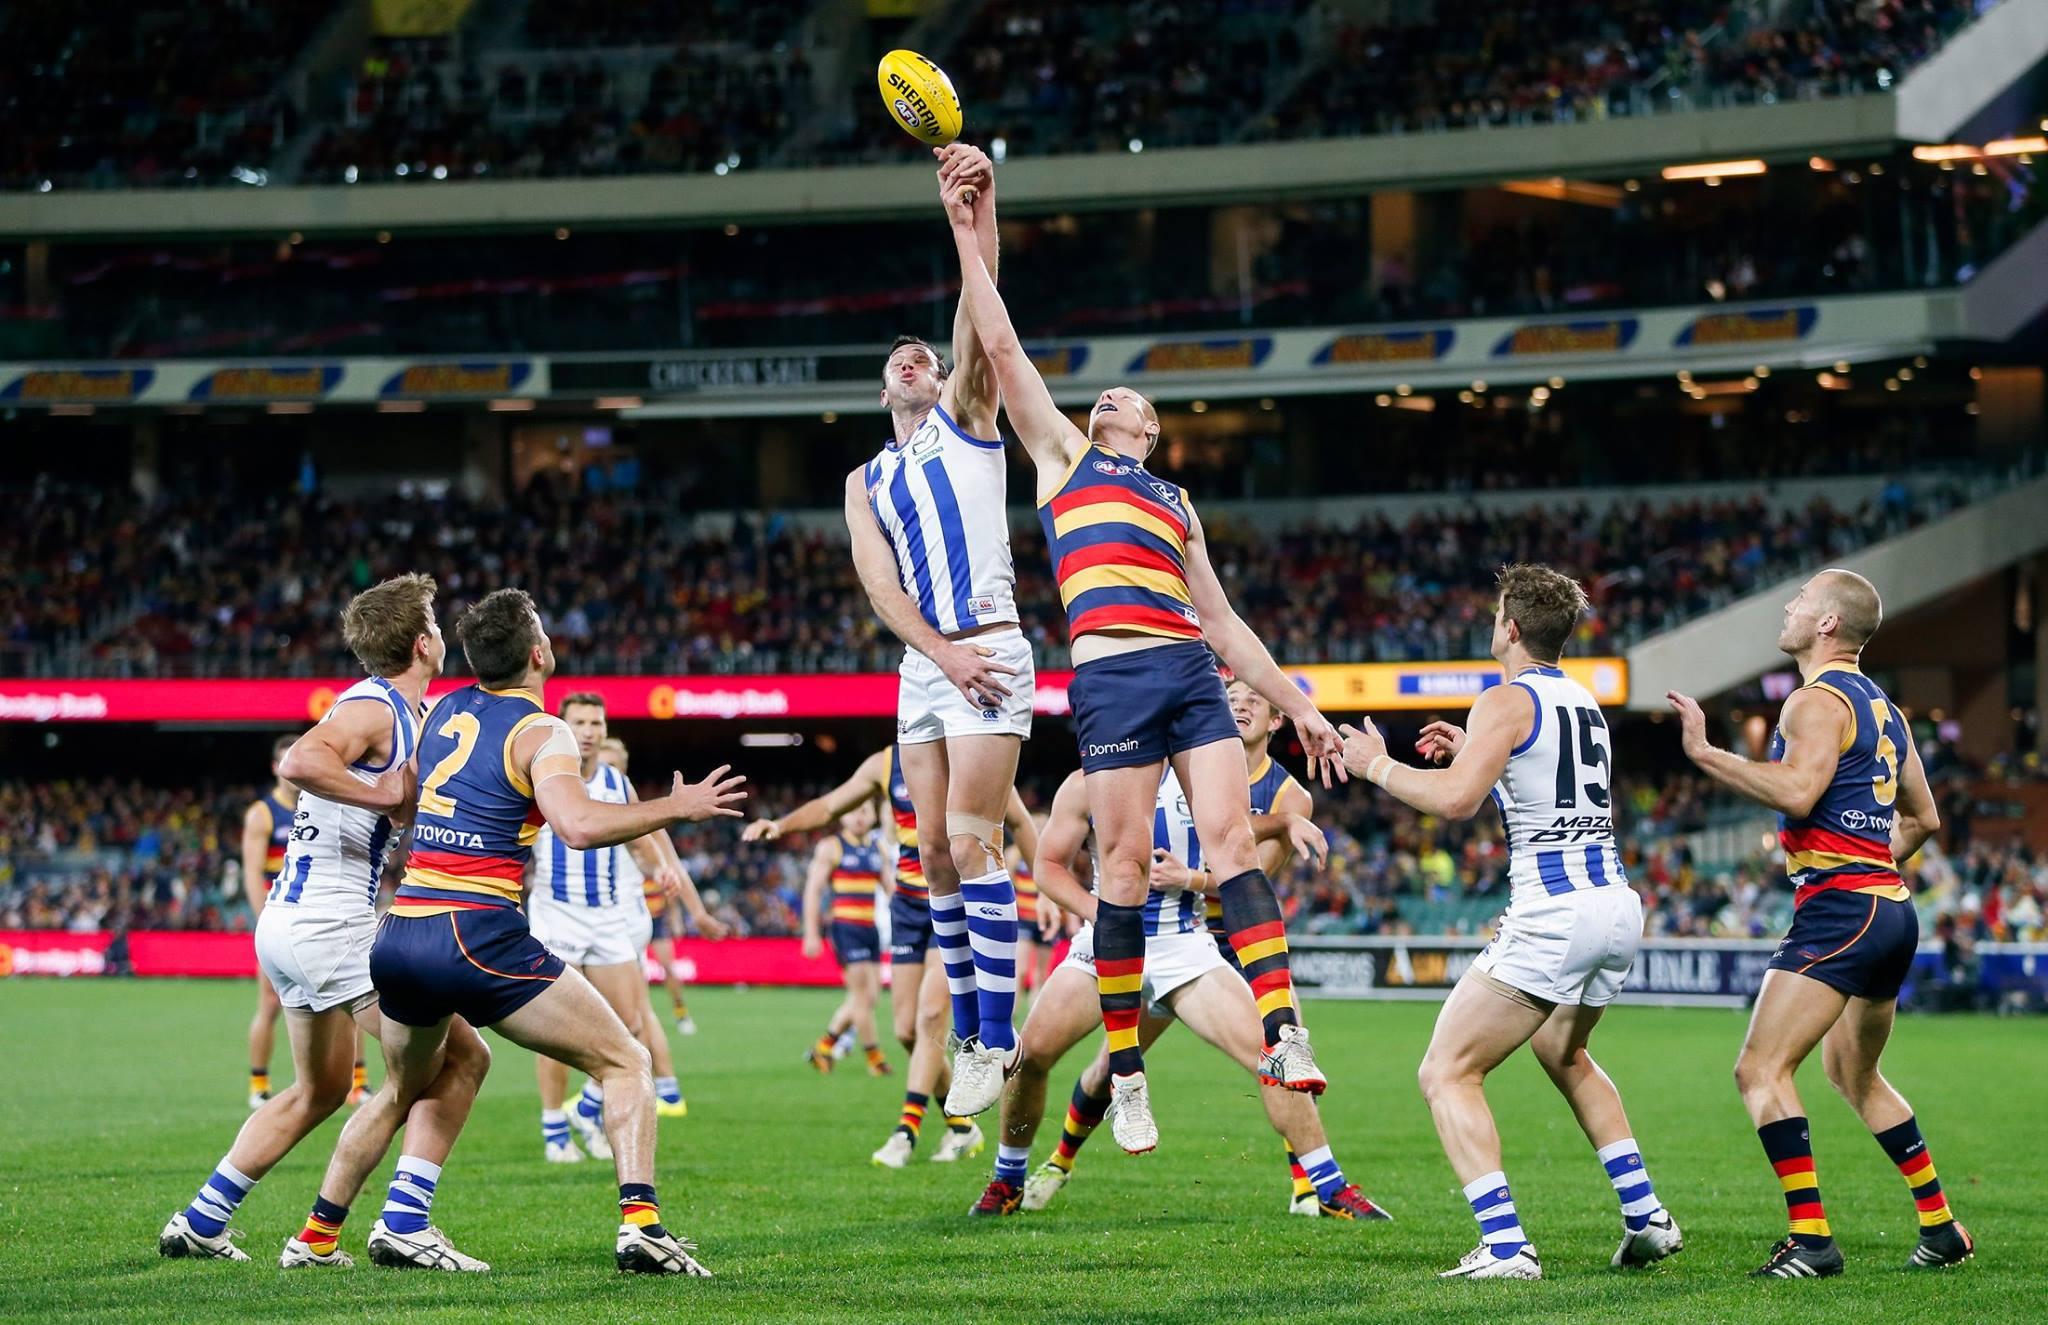 adelaide crows - photo #35